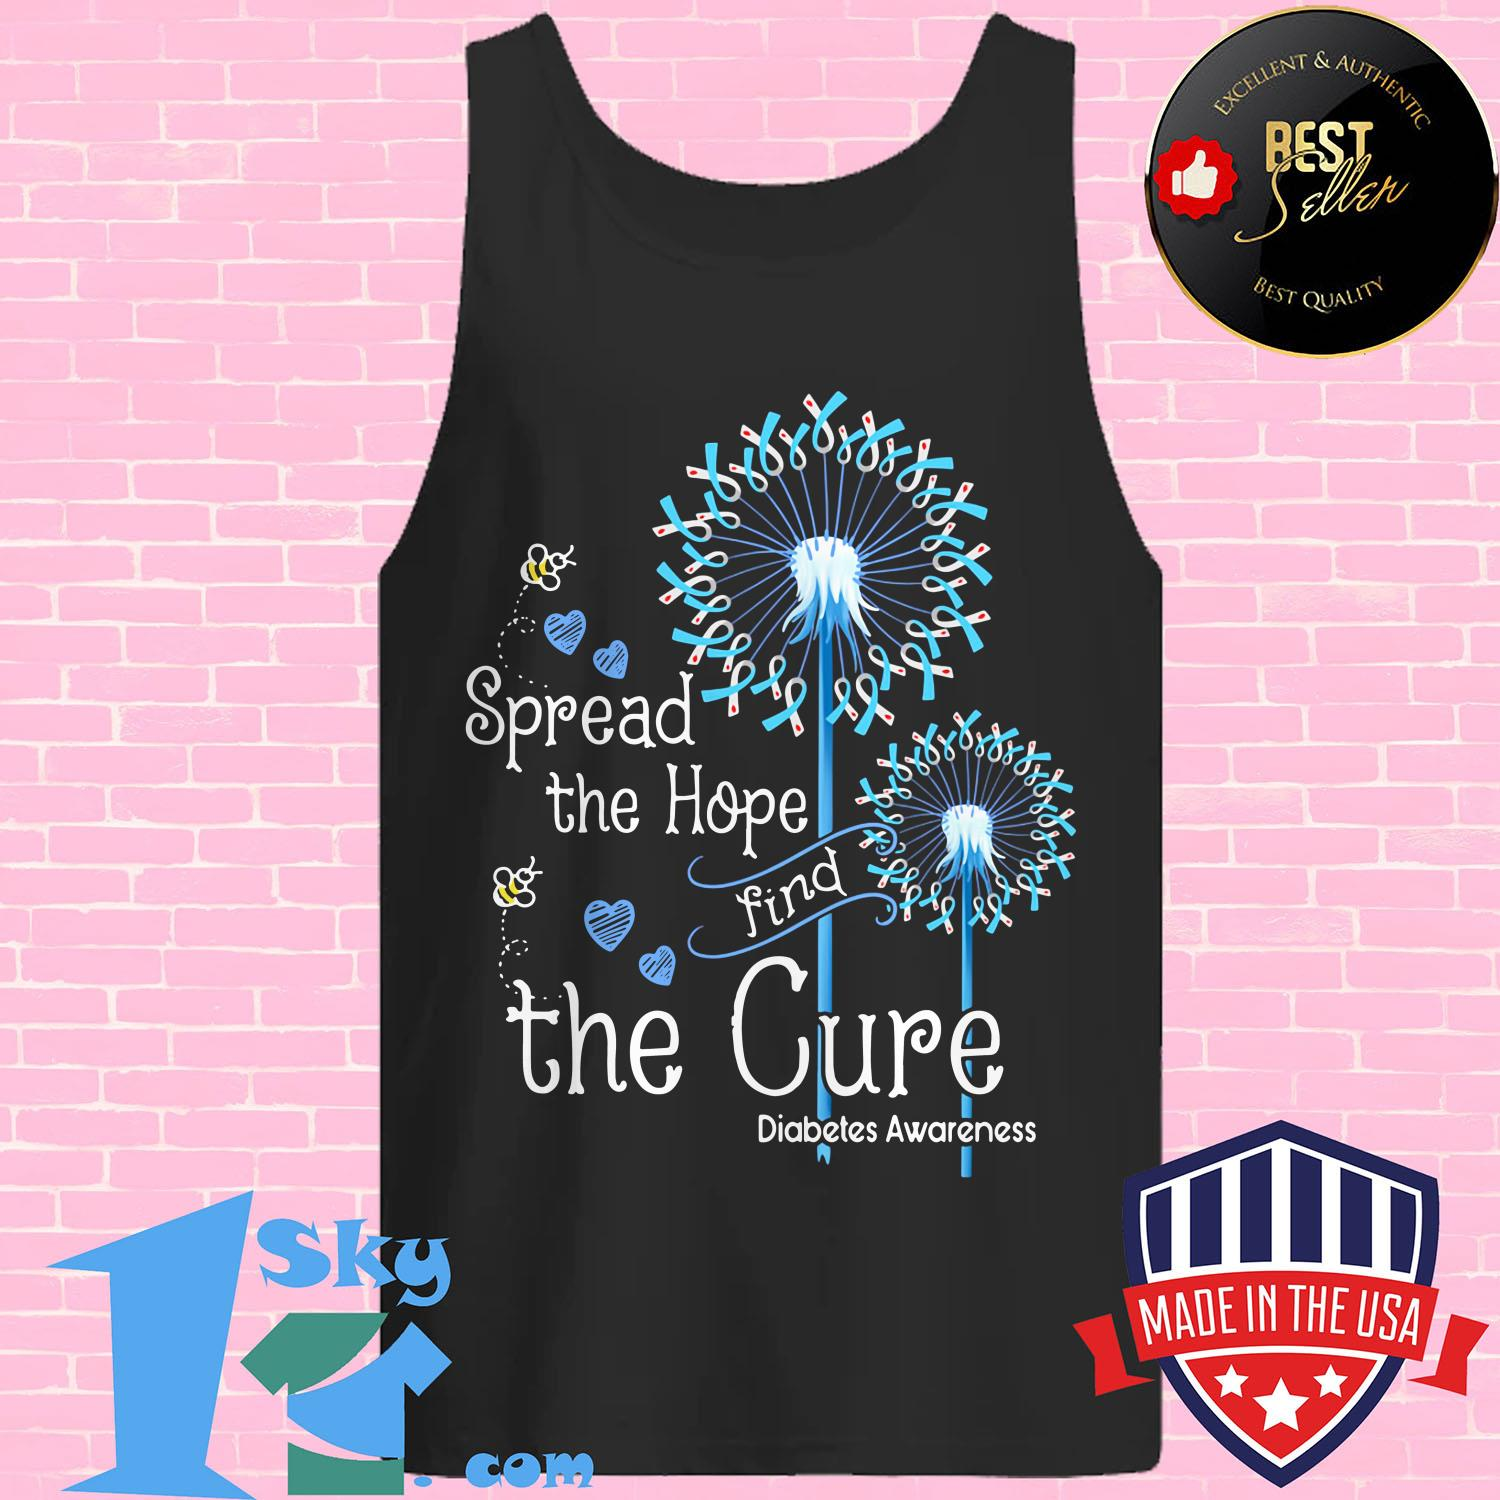 pread the hope find the cure diabetes awareness dandelion tank top - Spread the hope find the cure diabetes awareness dandelion shirt